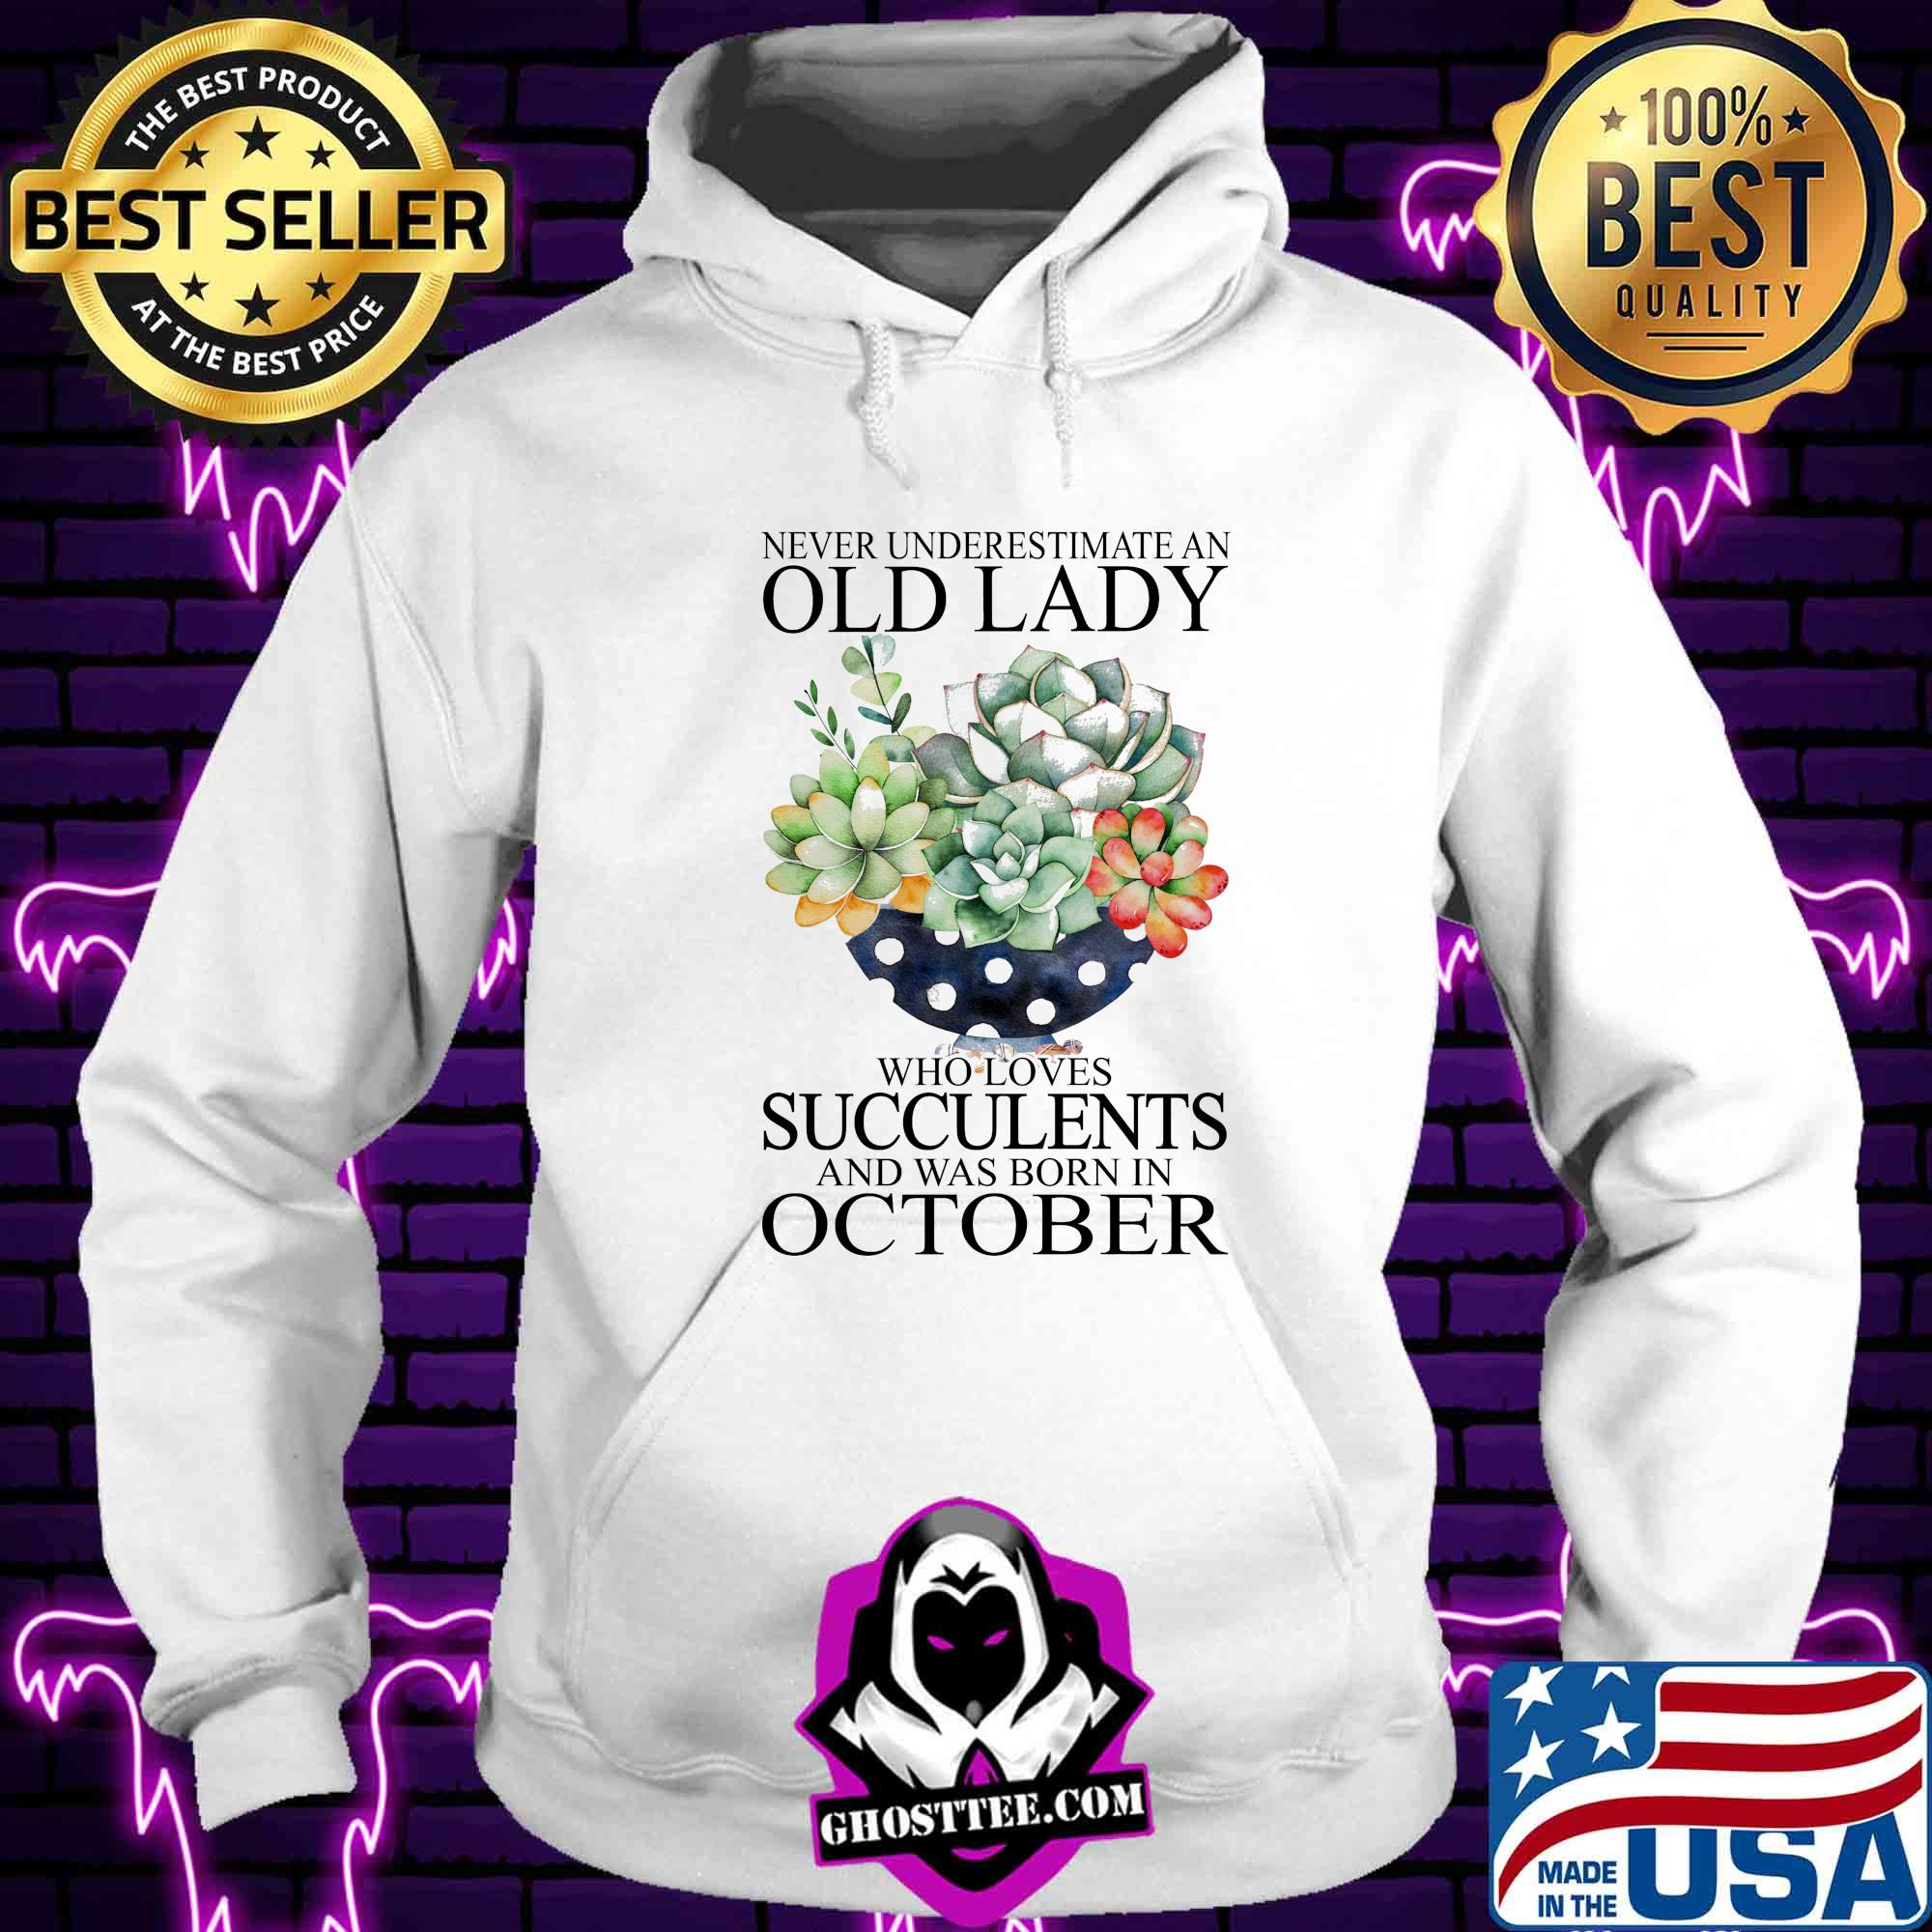 5320c096 never underestimate an old lady who loves succulents and was born in october shirt hoodie - Home